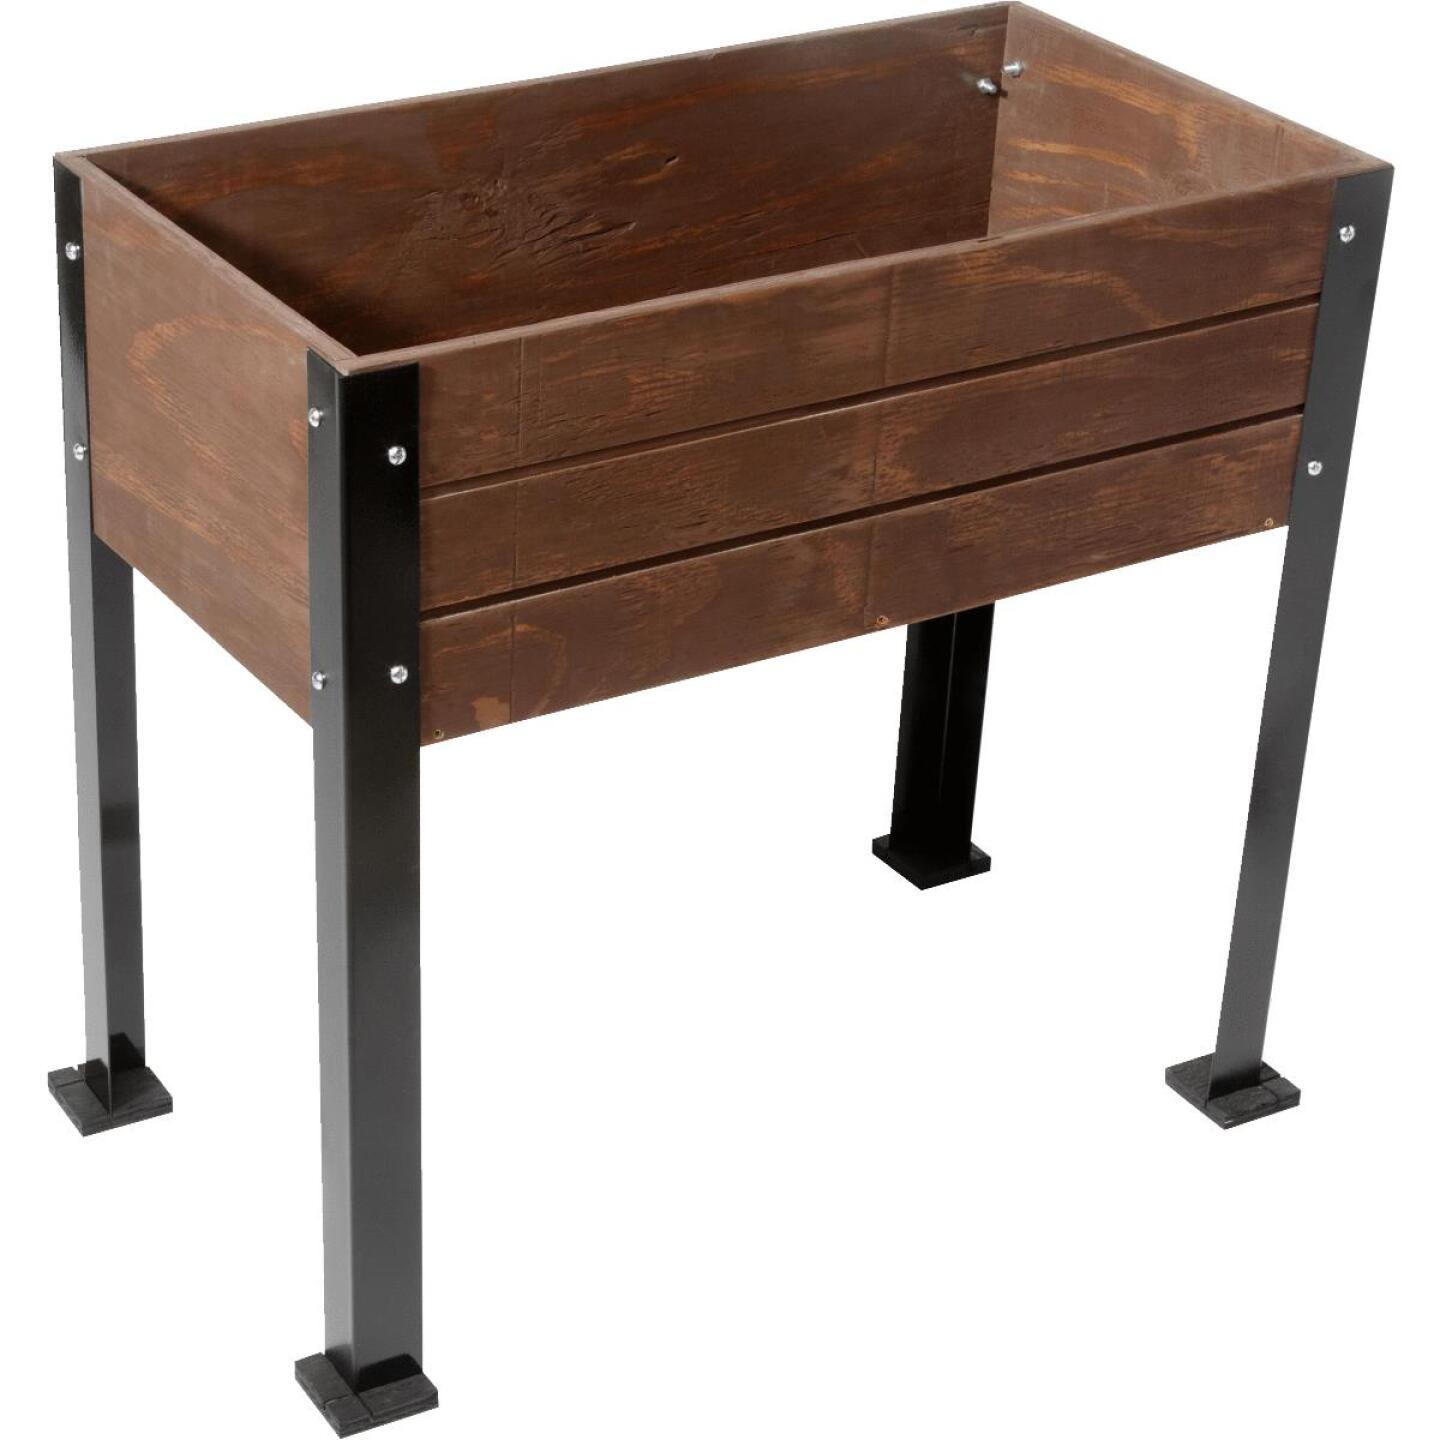 SGC Planters 10 In. W. x 32 In. H. x 32 In. L. Espresso Plywood Raised Garden Bed Garden System Image 1